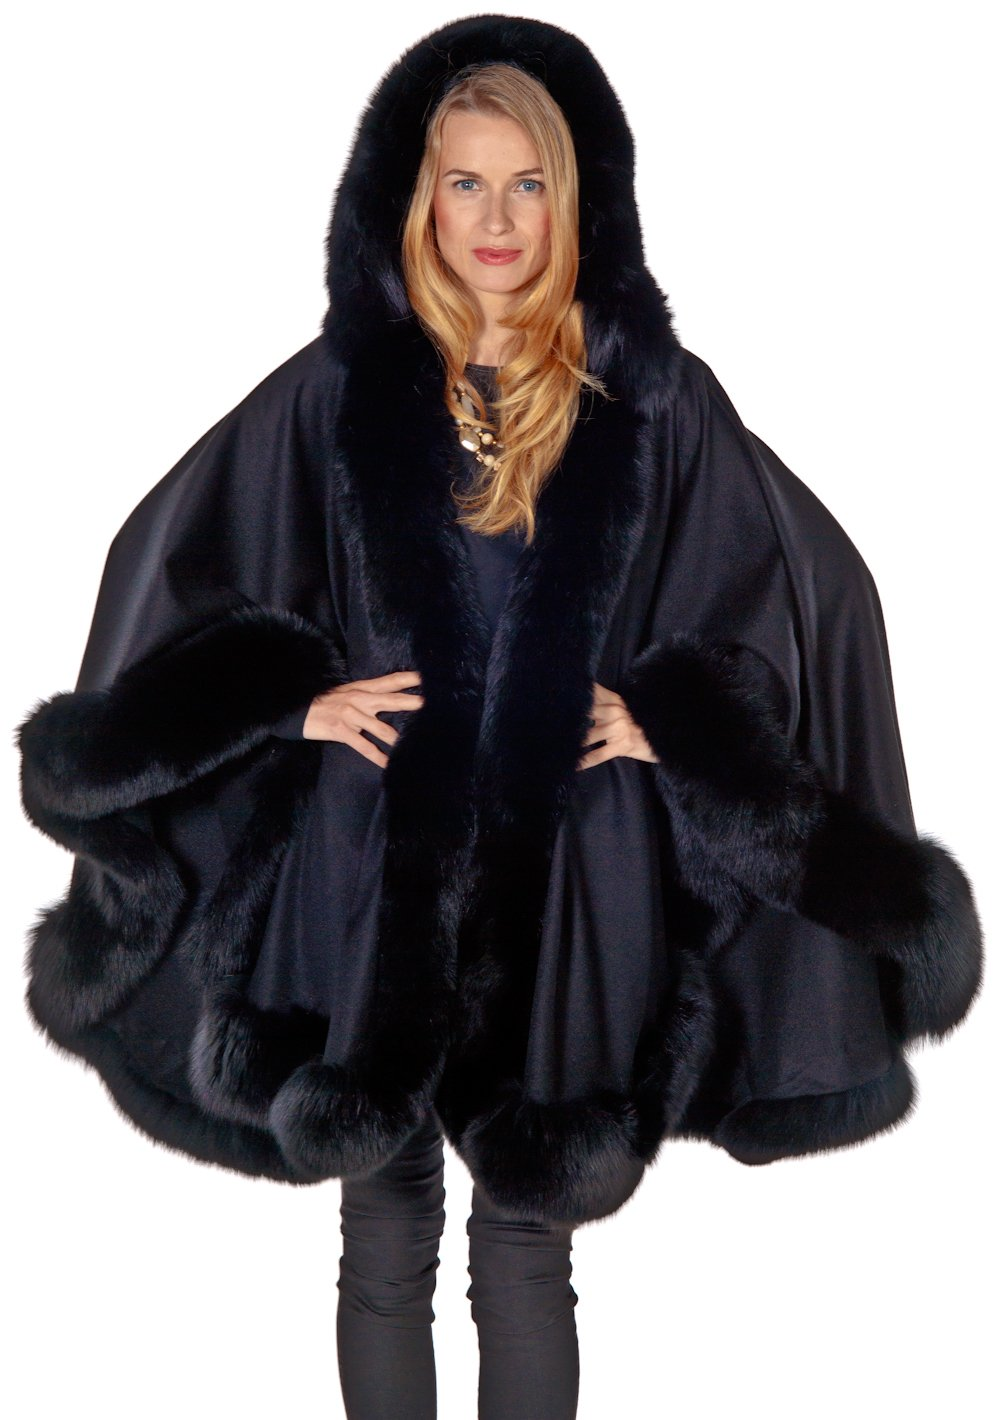 Madison Avenue Mall Womens Black Hooded Cashmere Cape With Fox Fur Trim